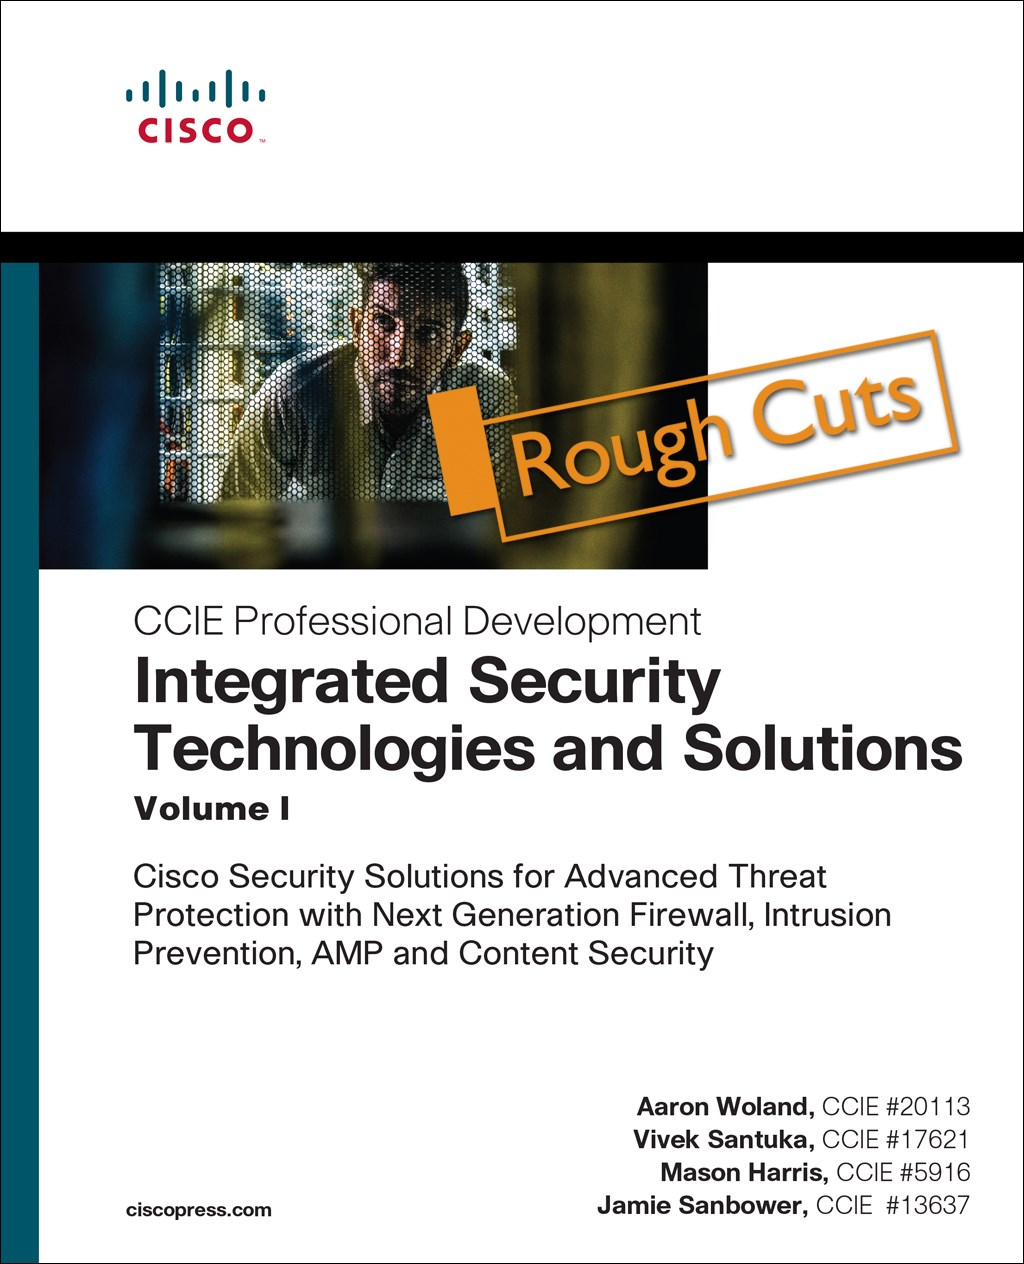 Integrated Security Technologies and Solutions - Volume I: Cisco Security Solutions for Advanced Threat Protection with Next Generation Firewall, Intrusion Prevention, AMP, and Content Security, Rough Cuts